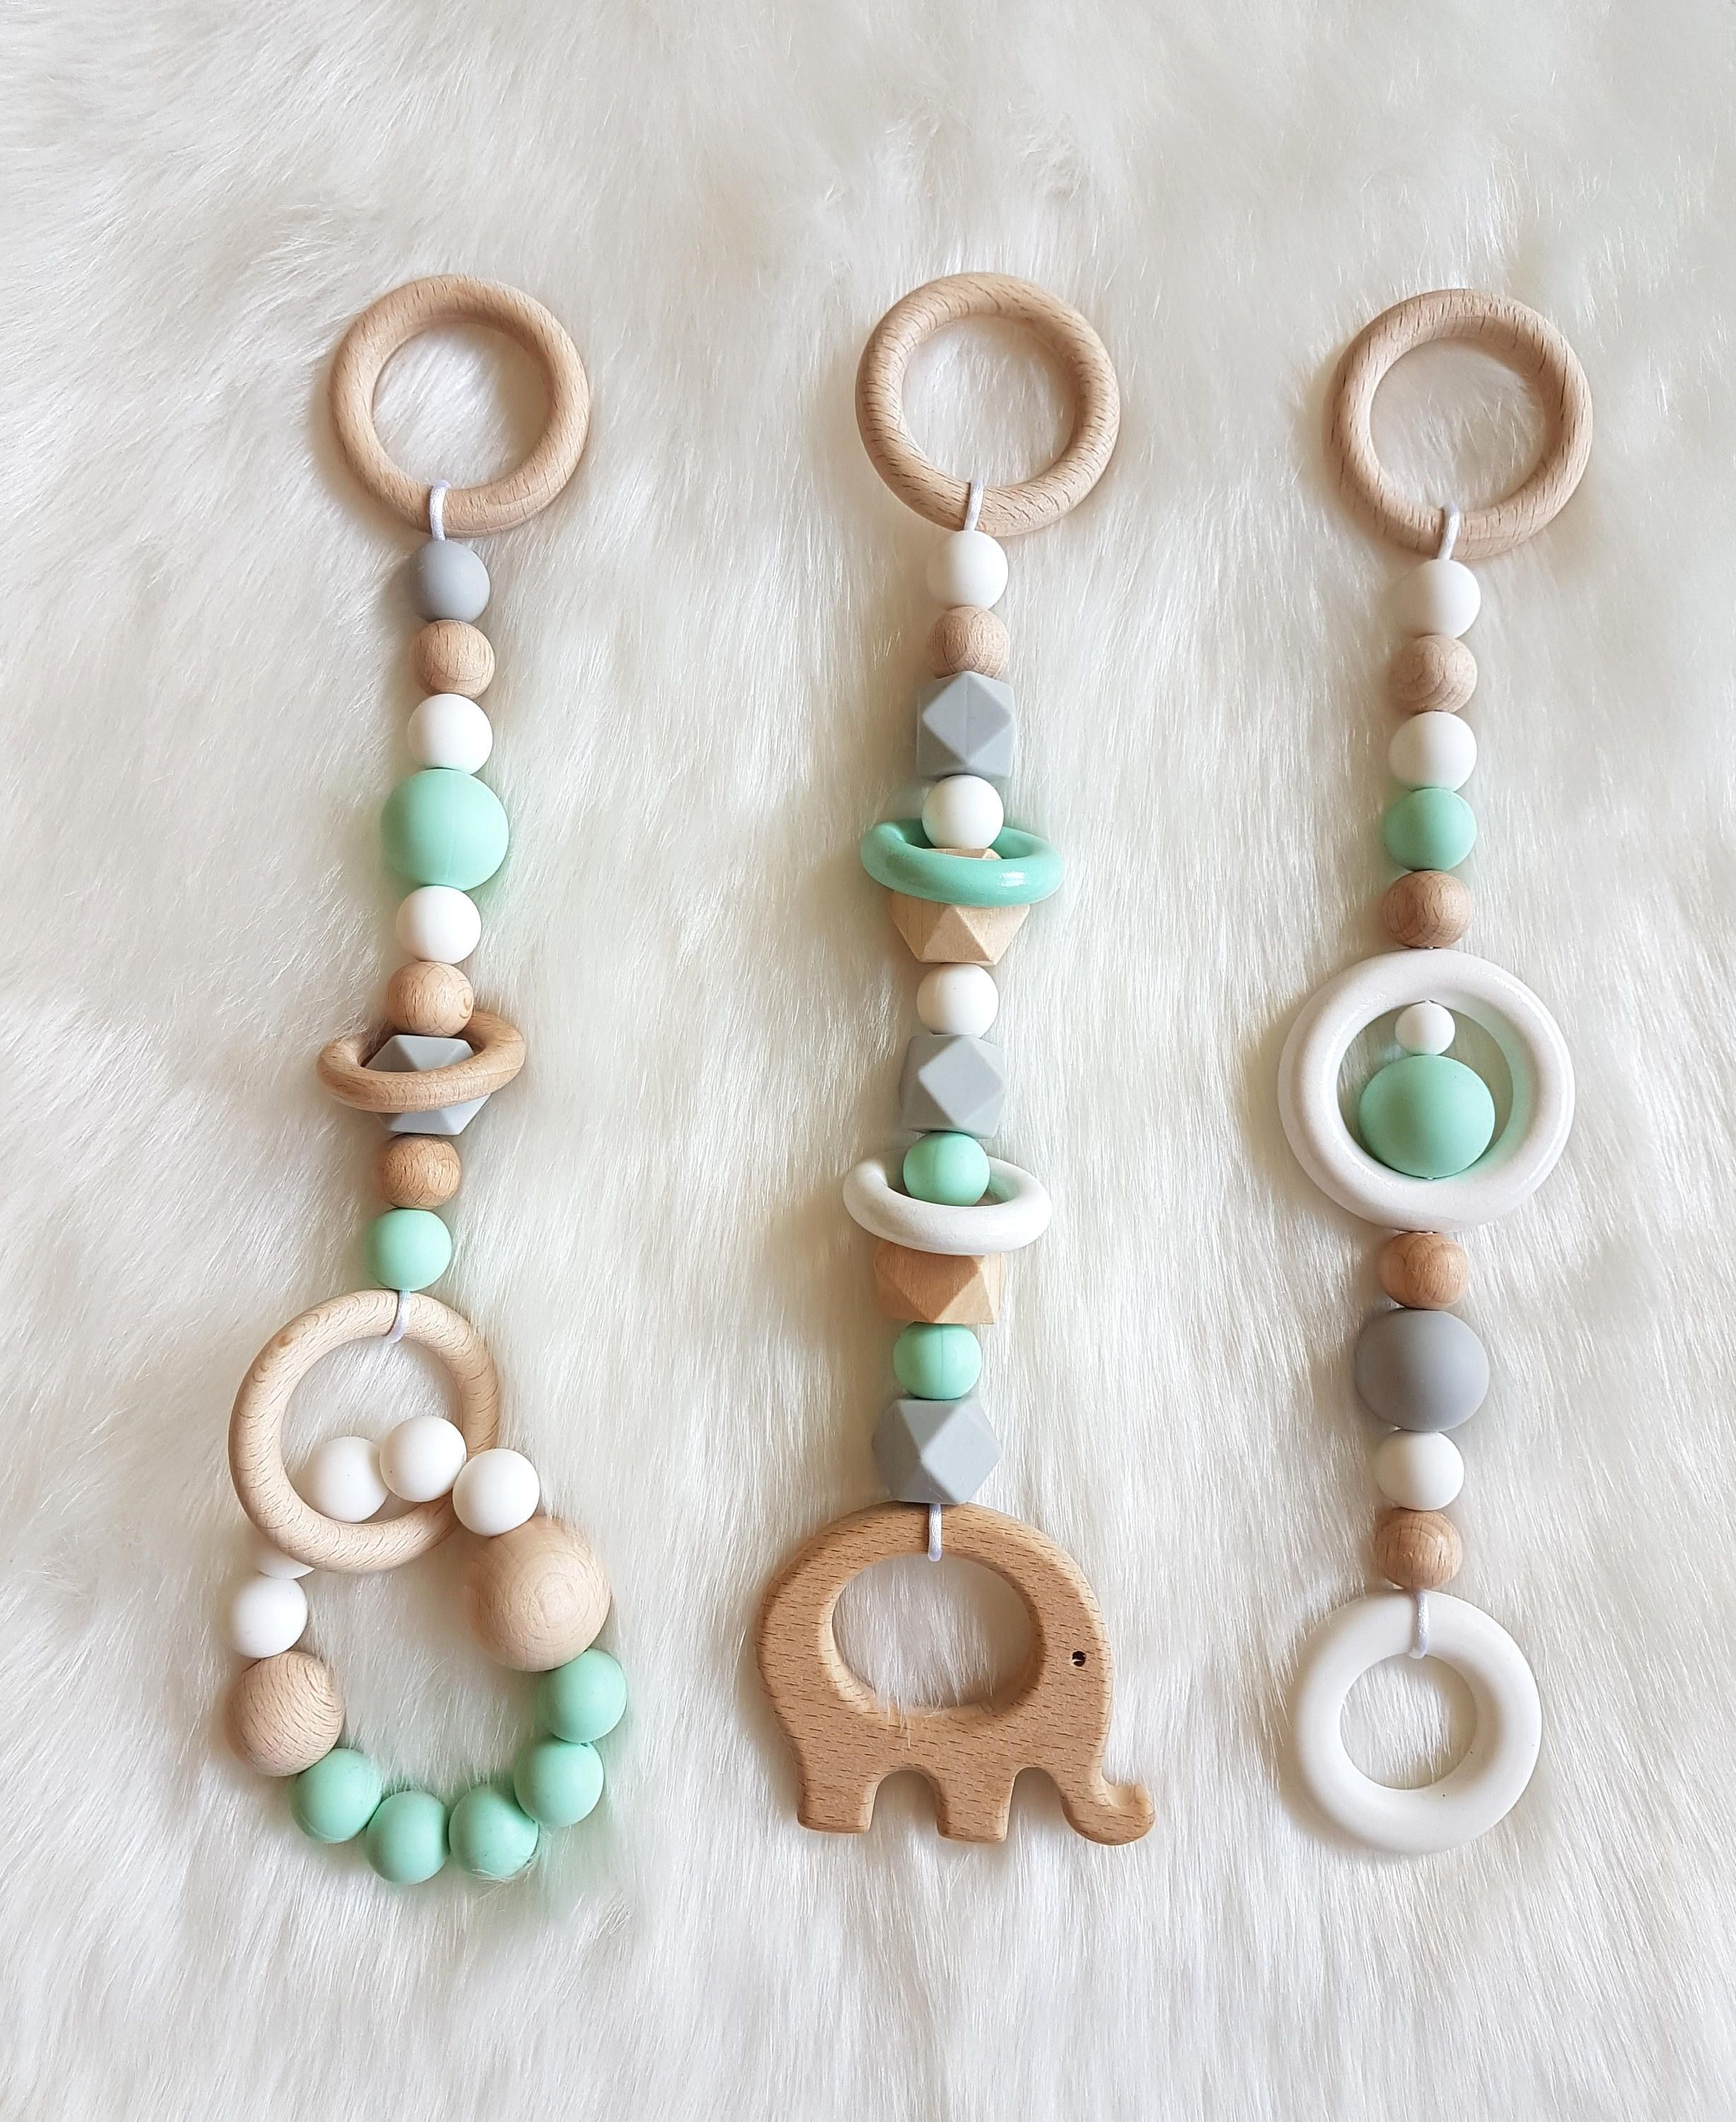 Baby Gym Toys, Mint Grey White, Baby Teethers, Chewable Beads,